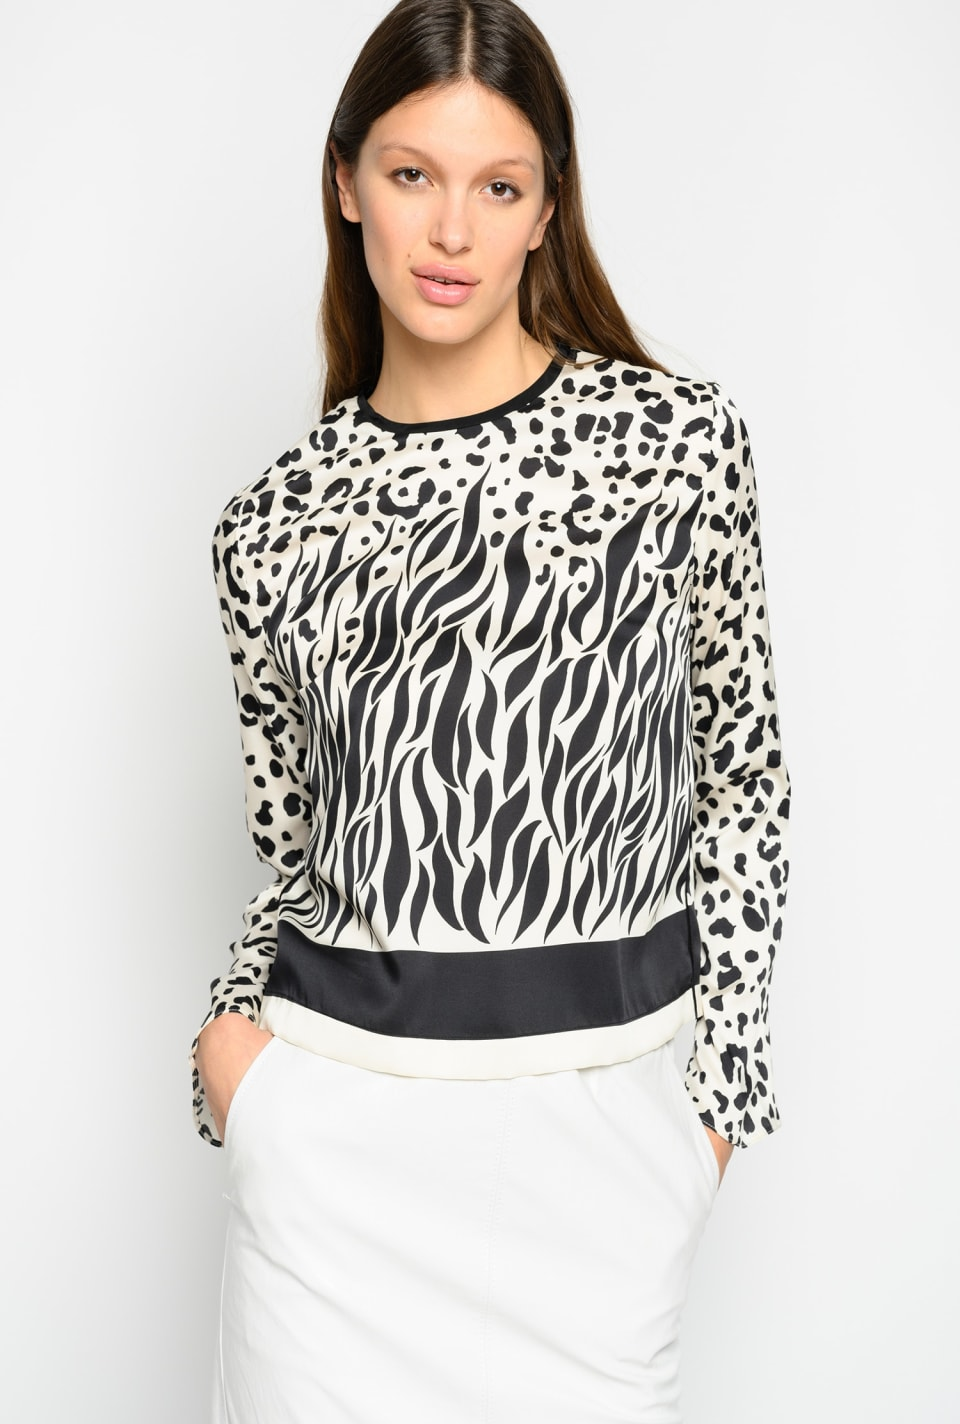 Blusa con estampado mixto animal degradado